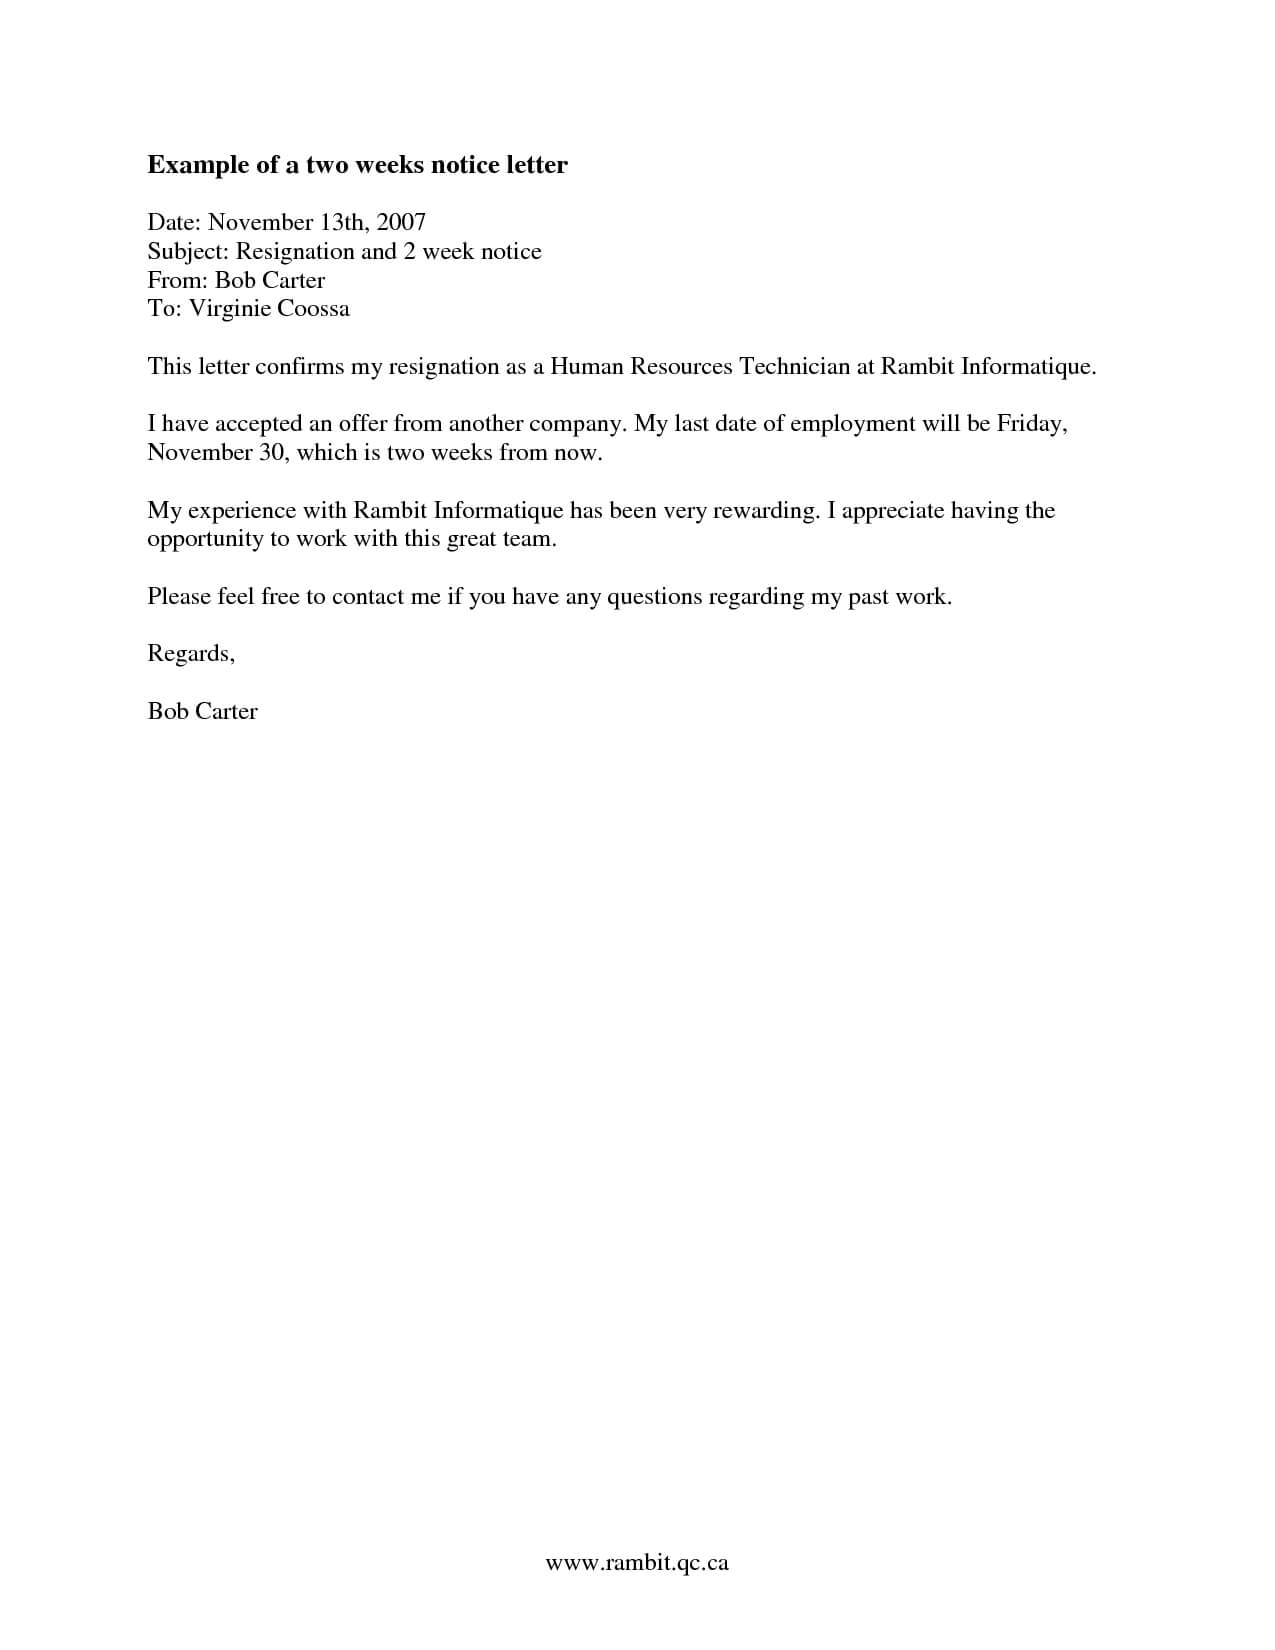 011 Twos Notice Letters Resignation Letter Templates For Pertaining To 2 Week Notice Letter Template